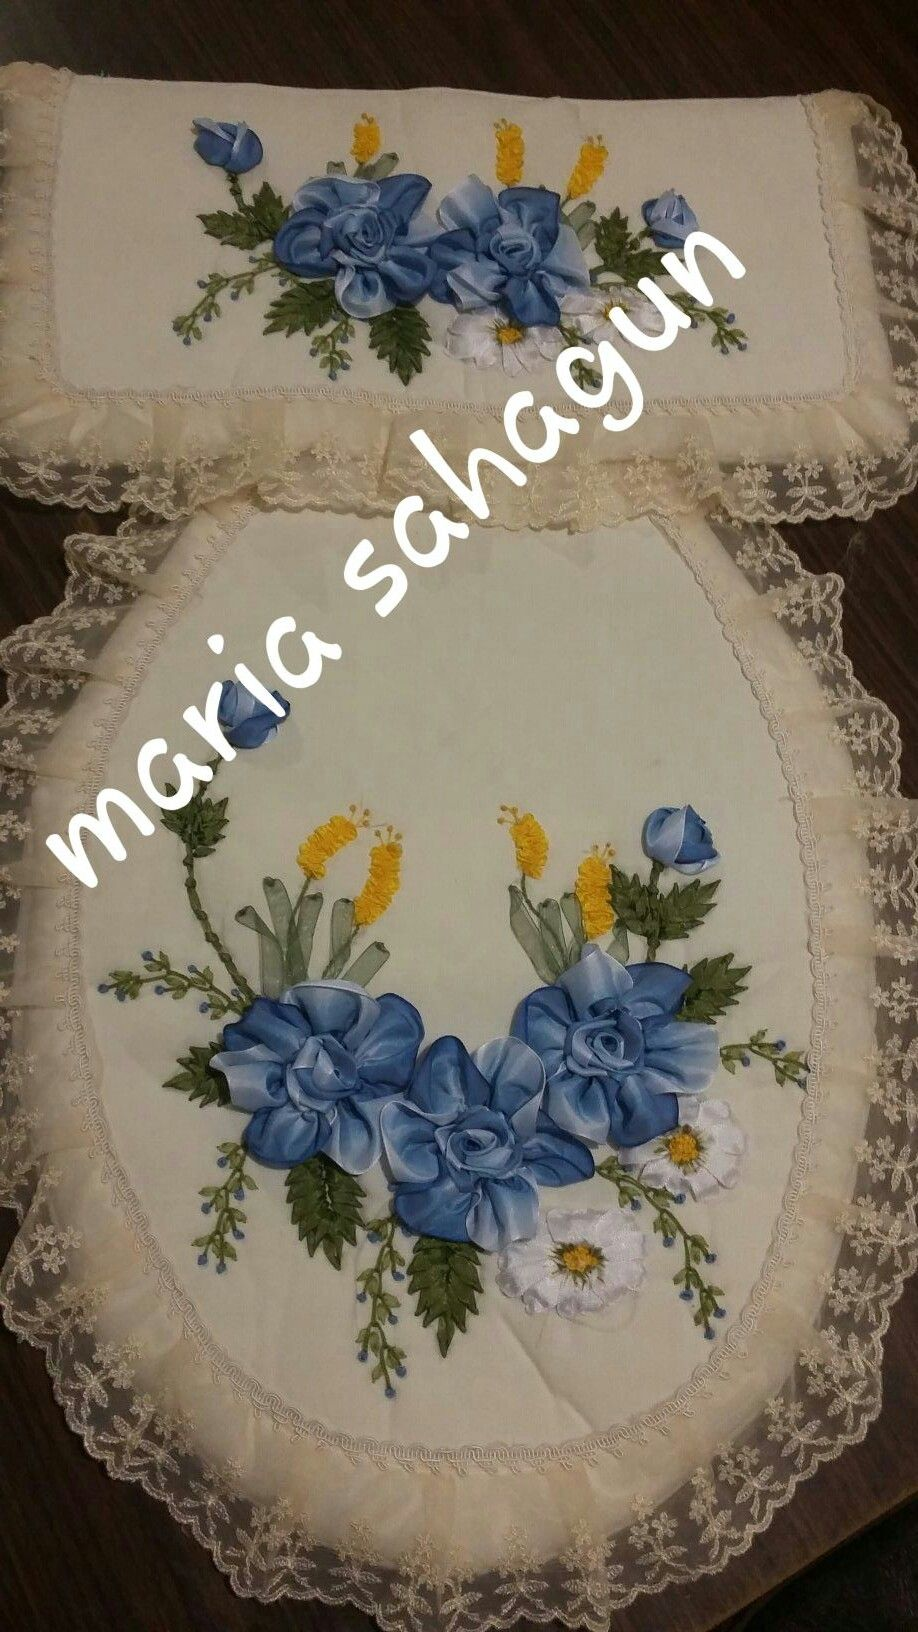 Pin by jacqueline avila on rosas pinterest embroidery - Cojines hechos a mano ...